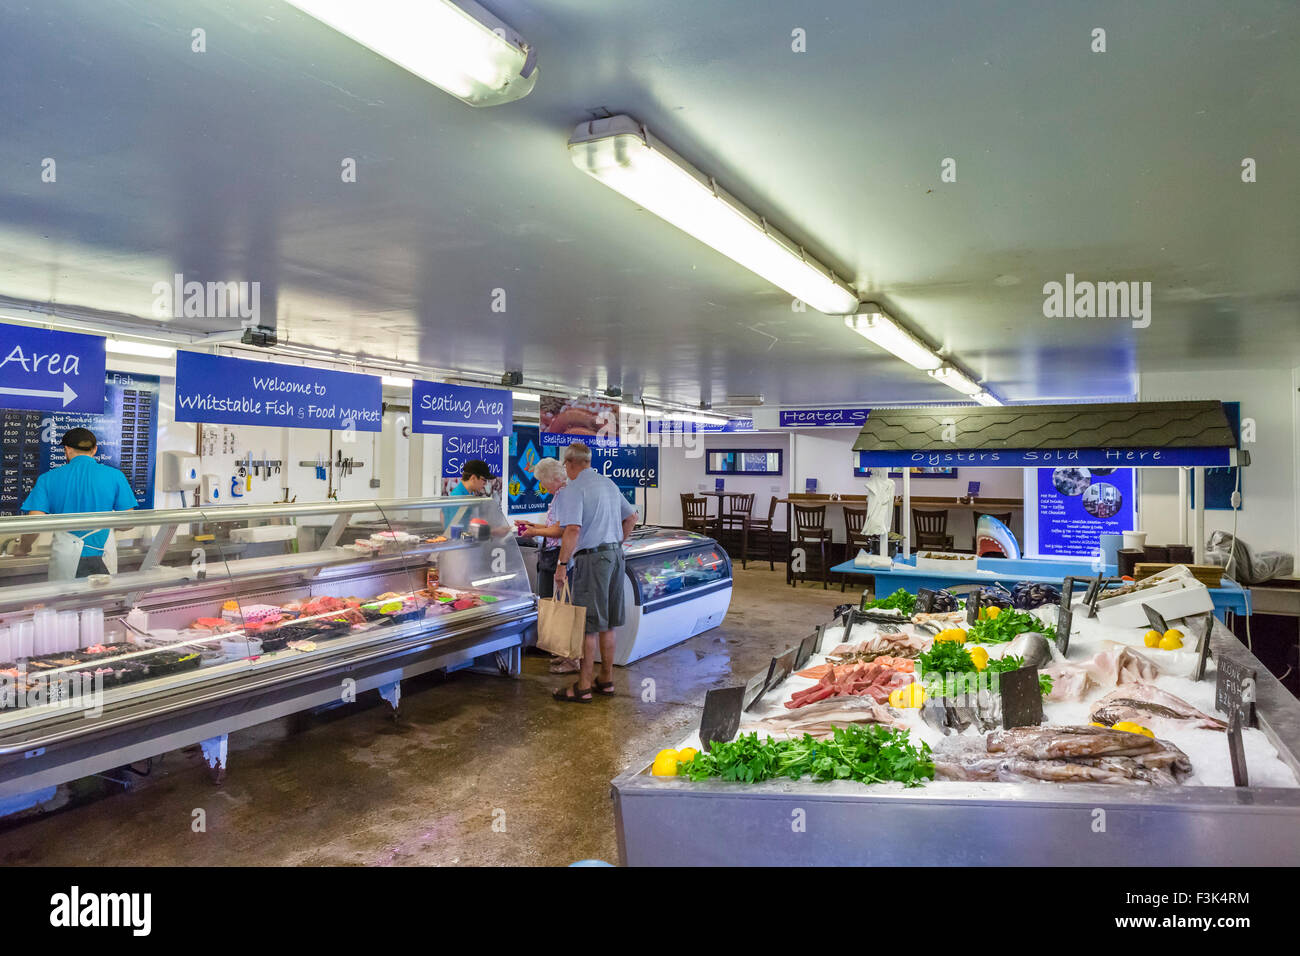 The Fish and Food Market by the harbour in Whitstable, Kent, England, UK Stock Photo